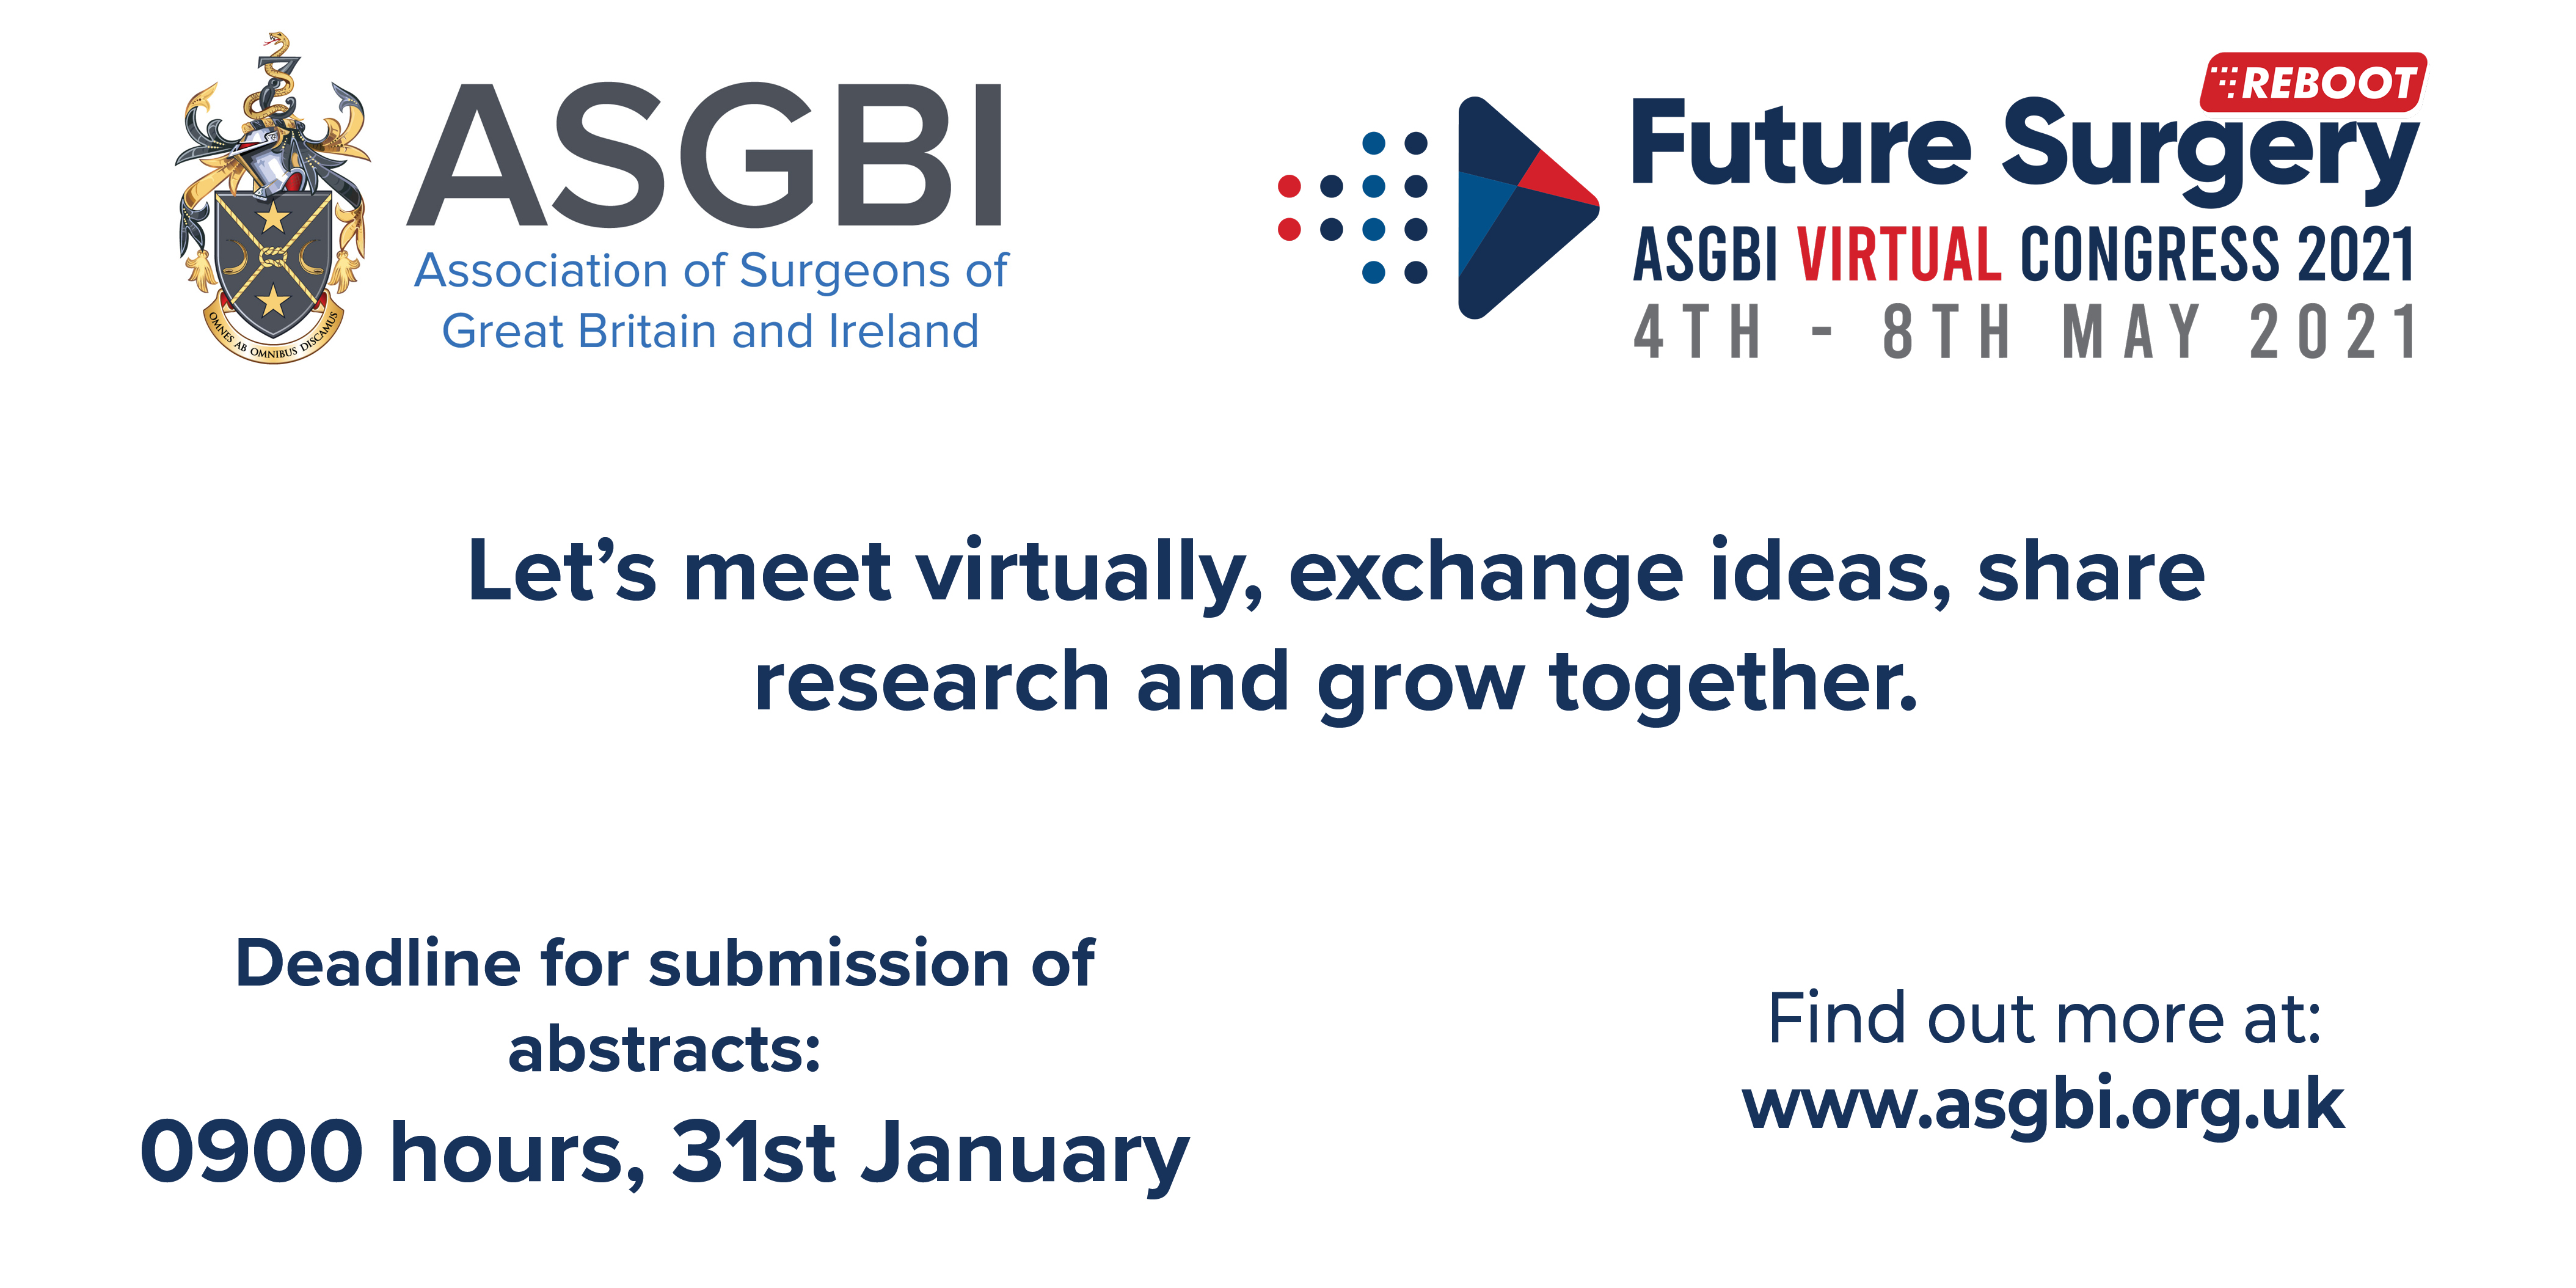 ASGBI Virtual Congress 2021